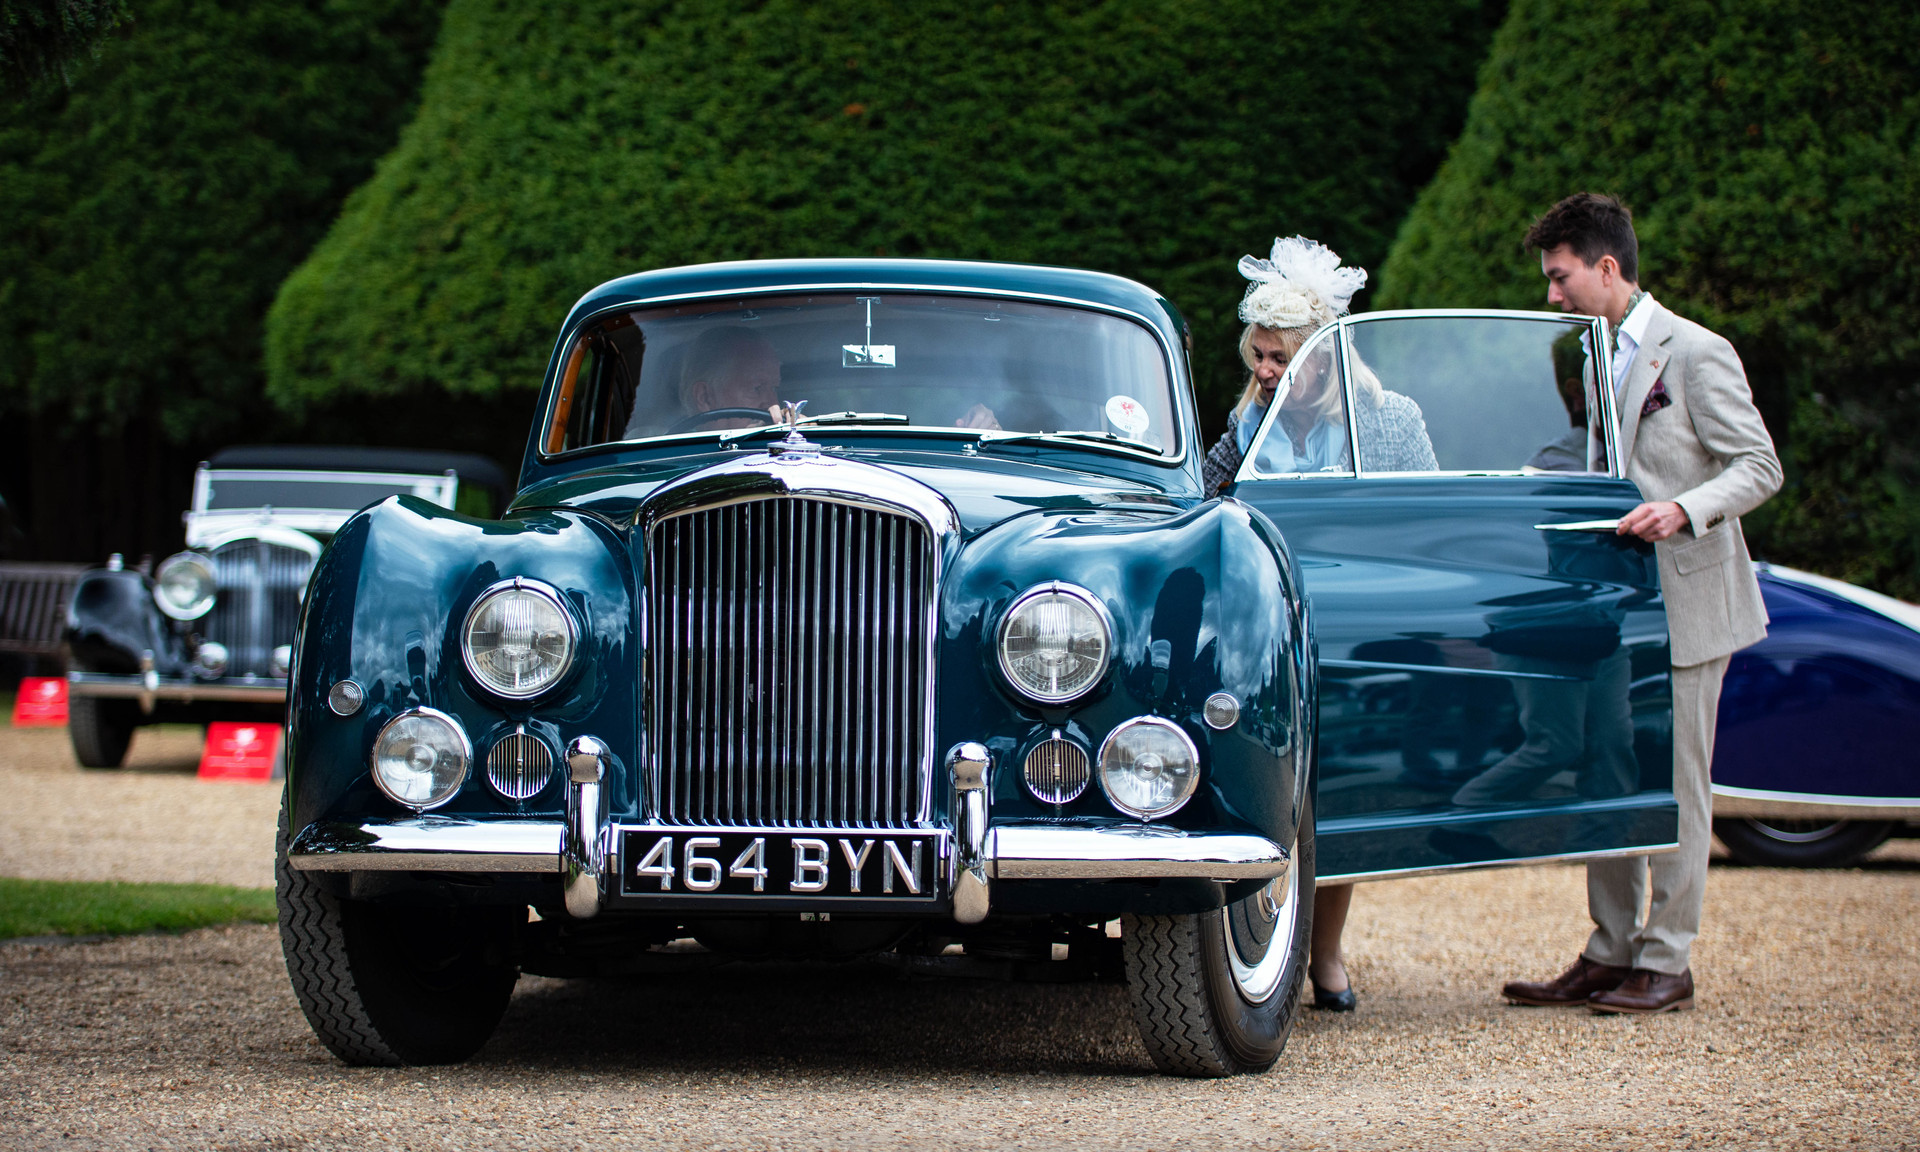 Fred Kriz' 1955 Bentley R-Type Continental